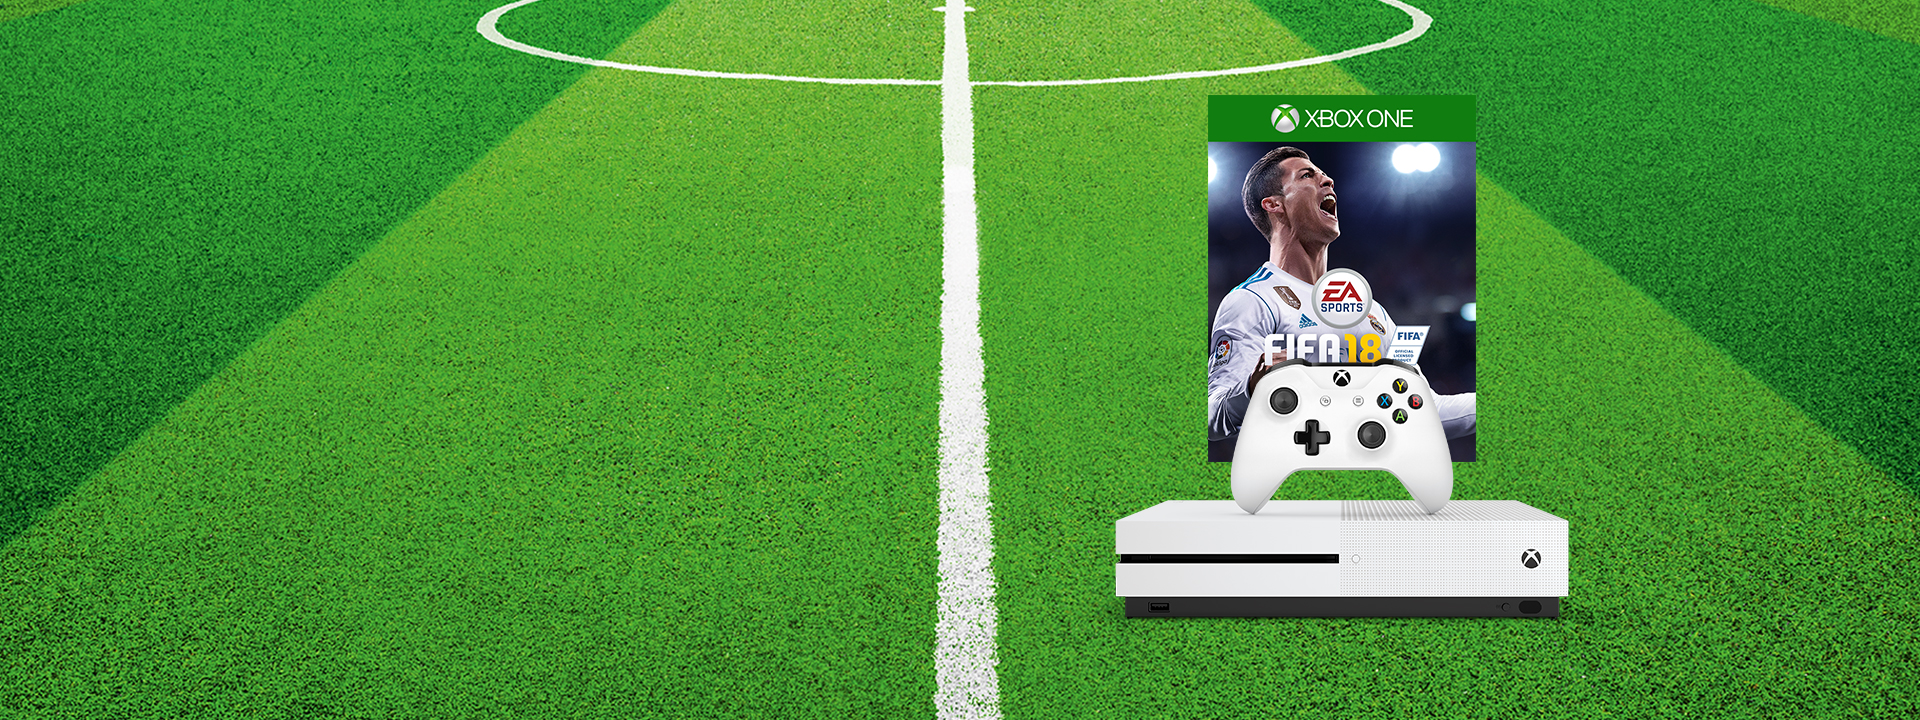 Get FIFA 18 when you buy select Xbox One S bundles